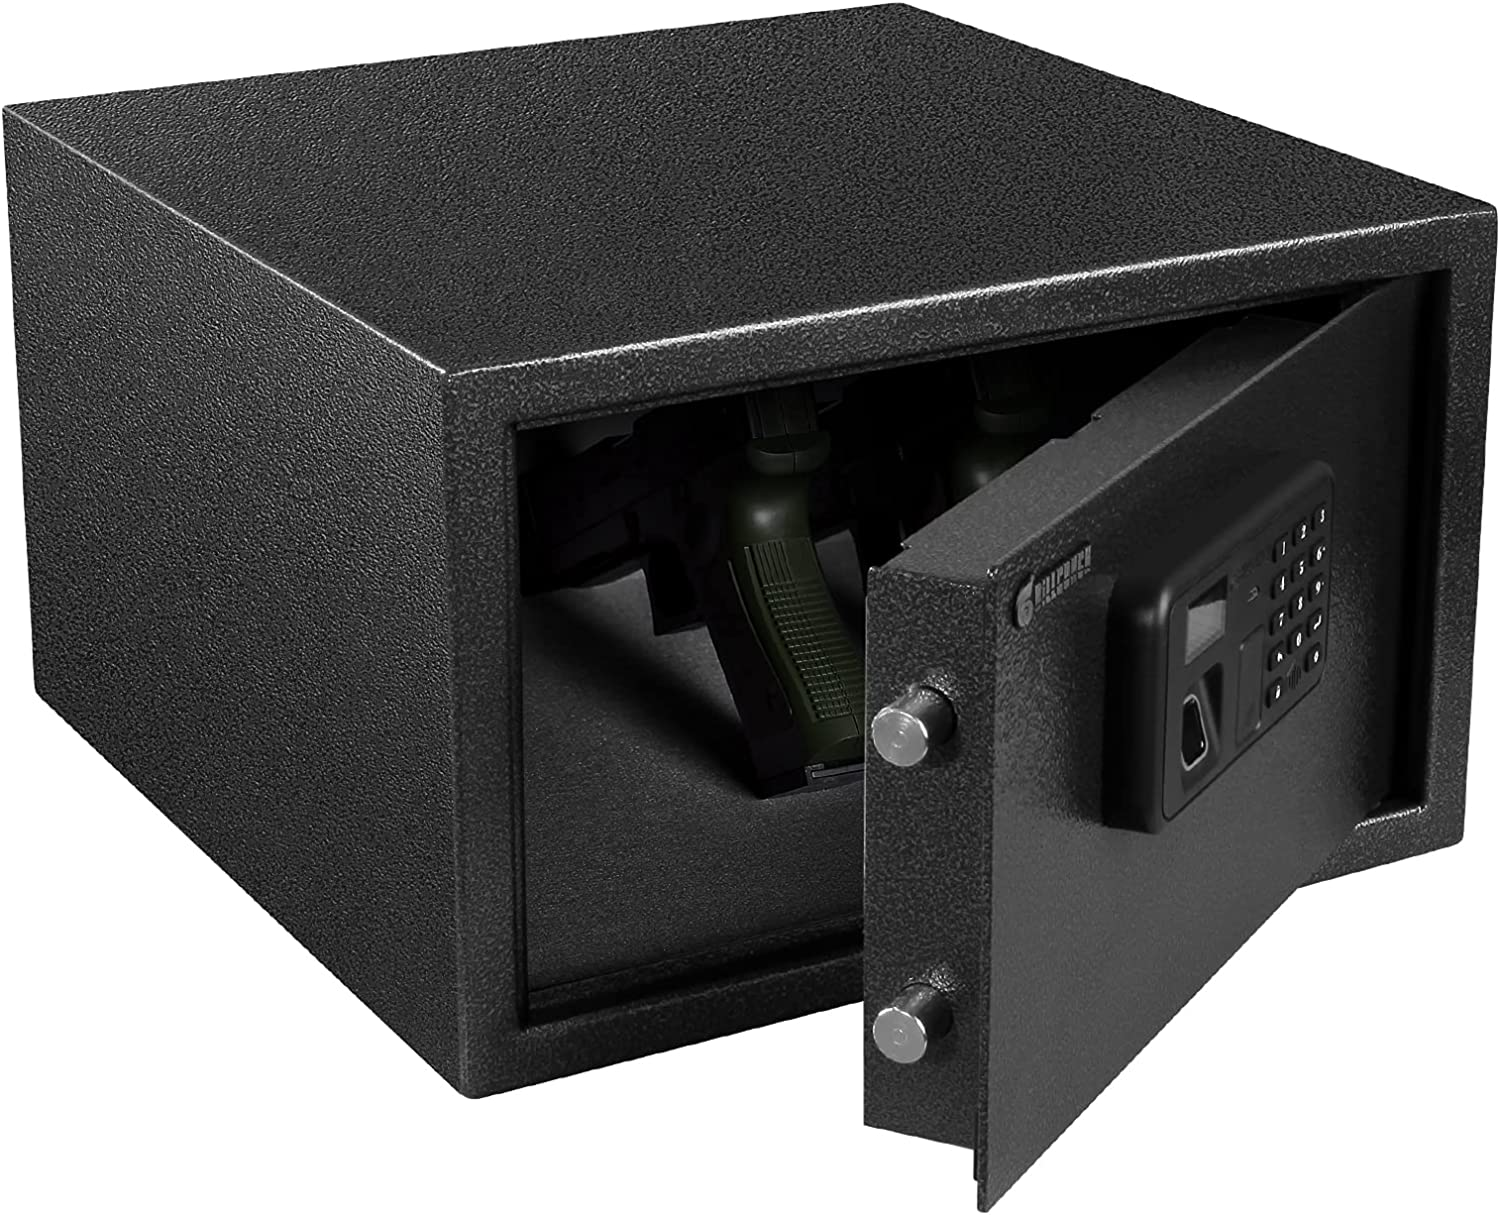 BILLCONCH Gun Safe, Biometric Pistol Safe with Display and Voice Prompt, Automatic Locking Tabs   Detachable Shelf and Foldable Gun Racks for Handgun Safe